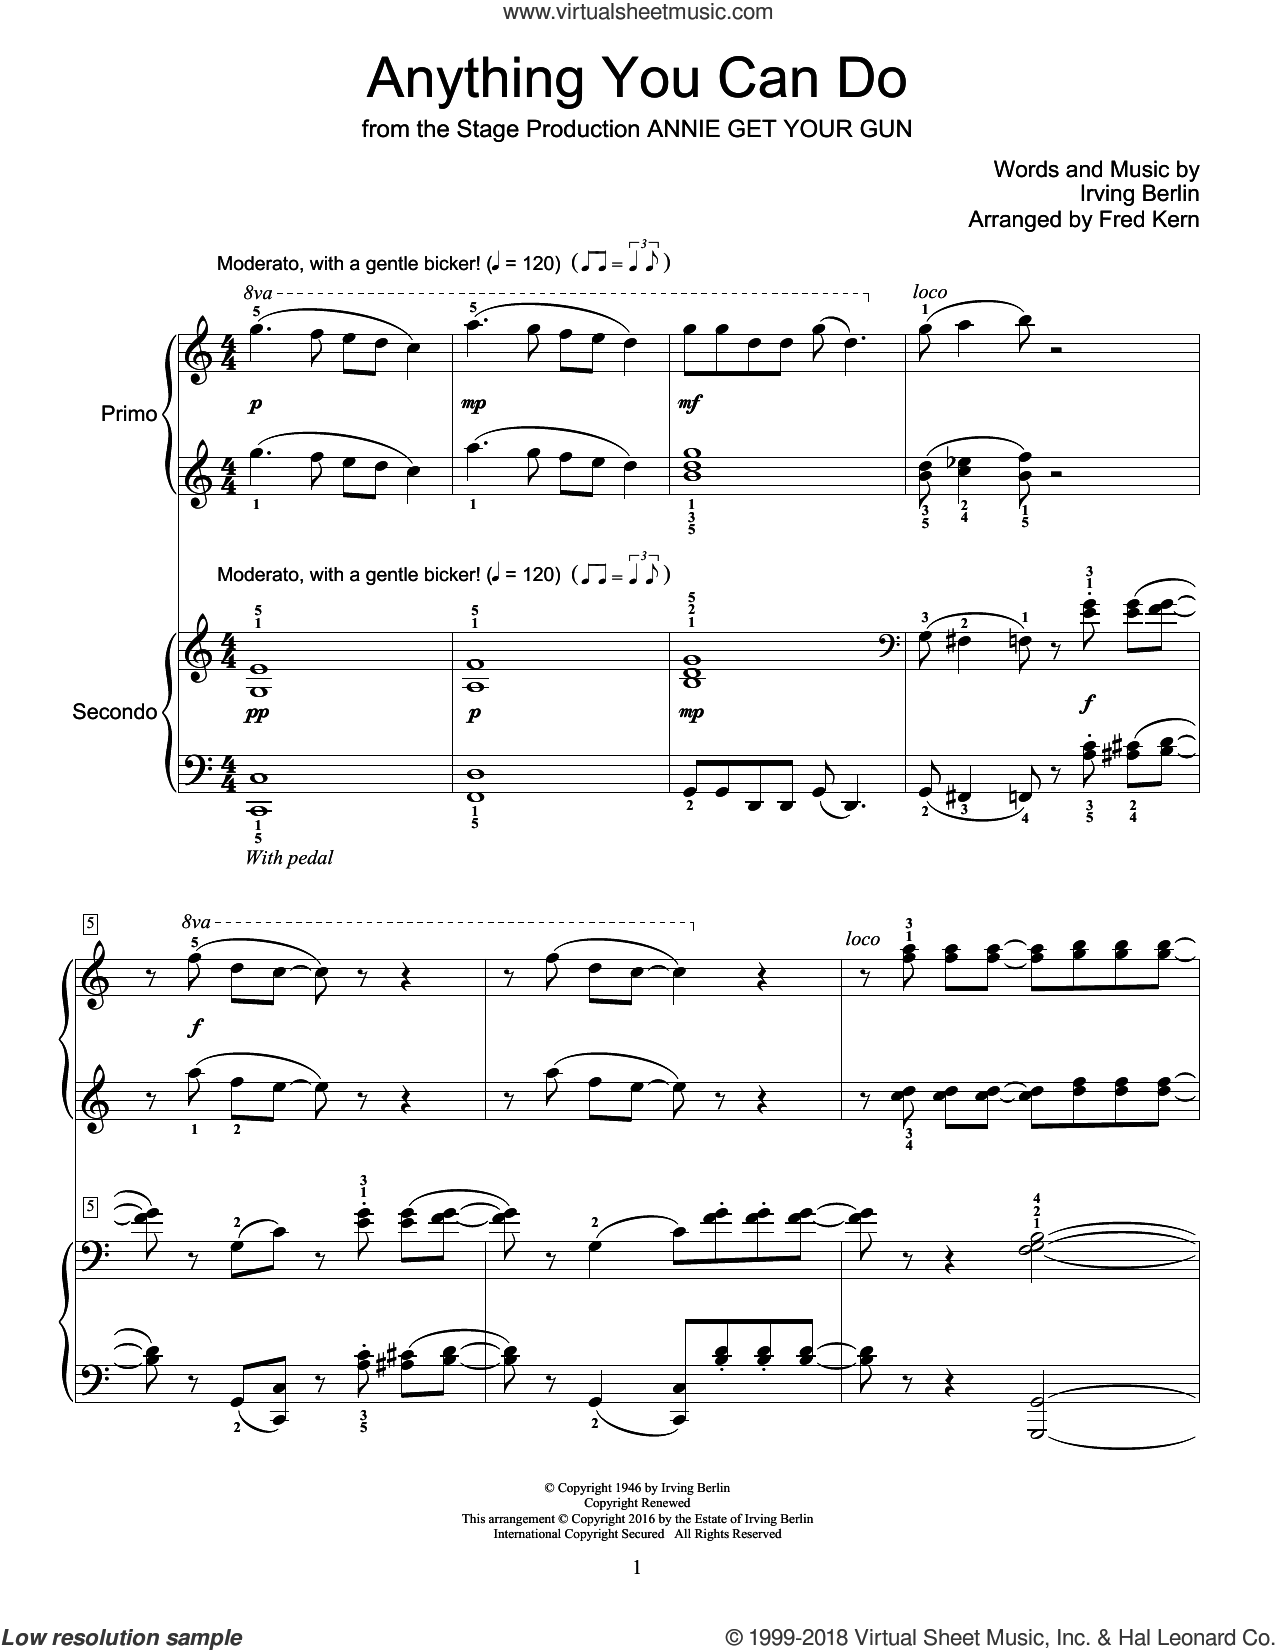 Anything You Can Do sheet music for piano four hands by Irving Berlin and Fred Kern, intermediate skill level